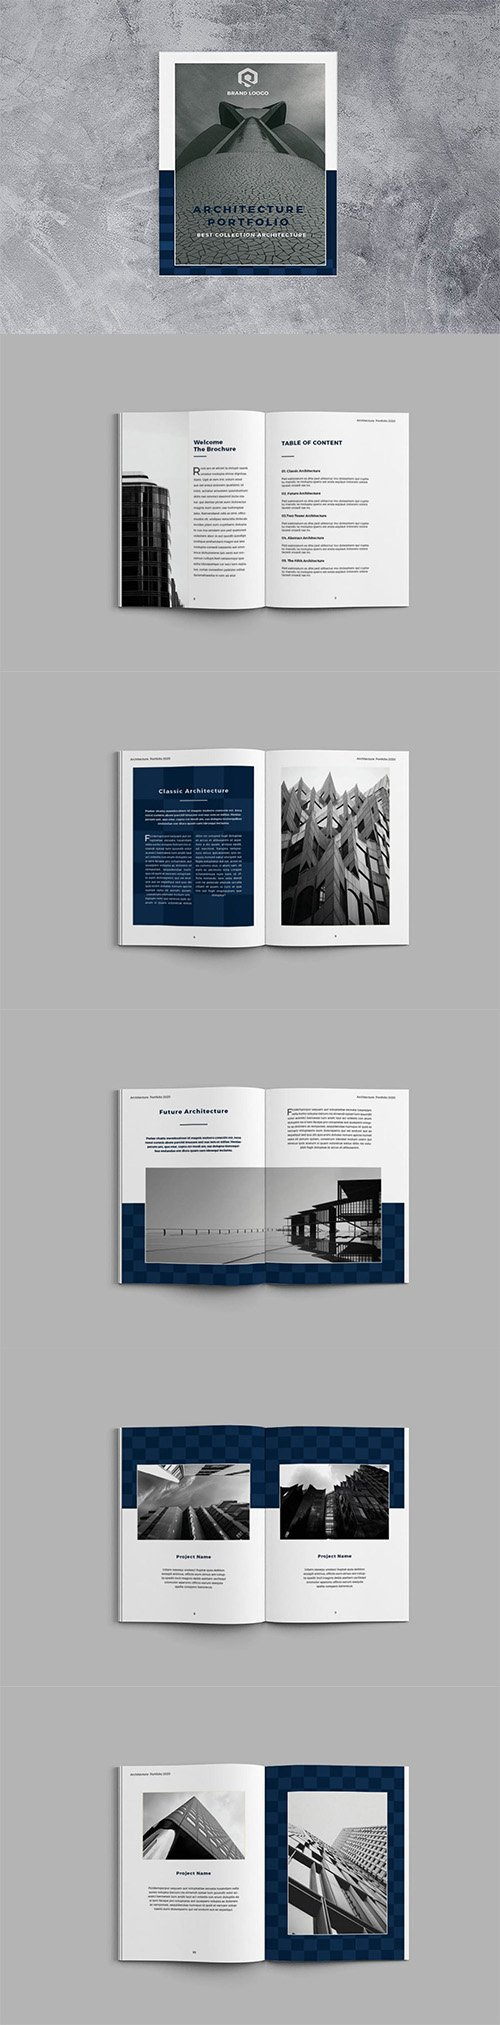 Architecture Brochure INDD